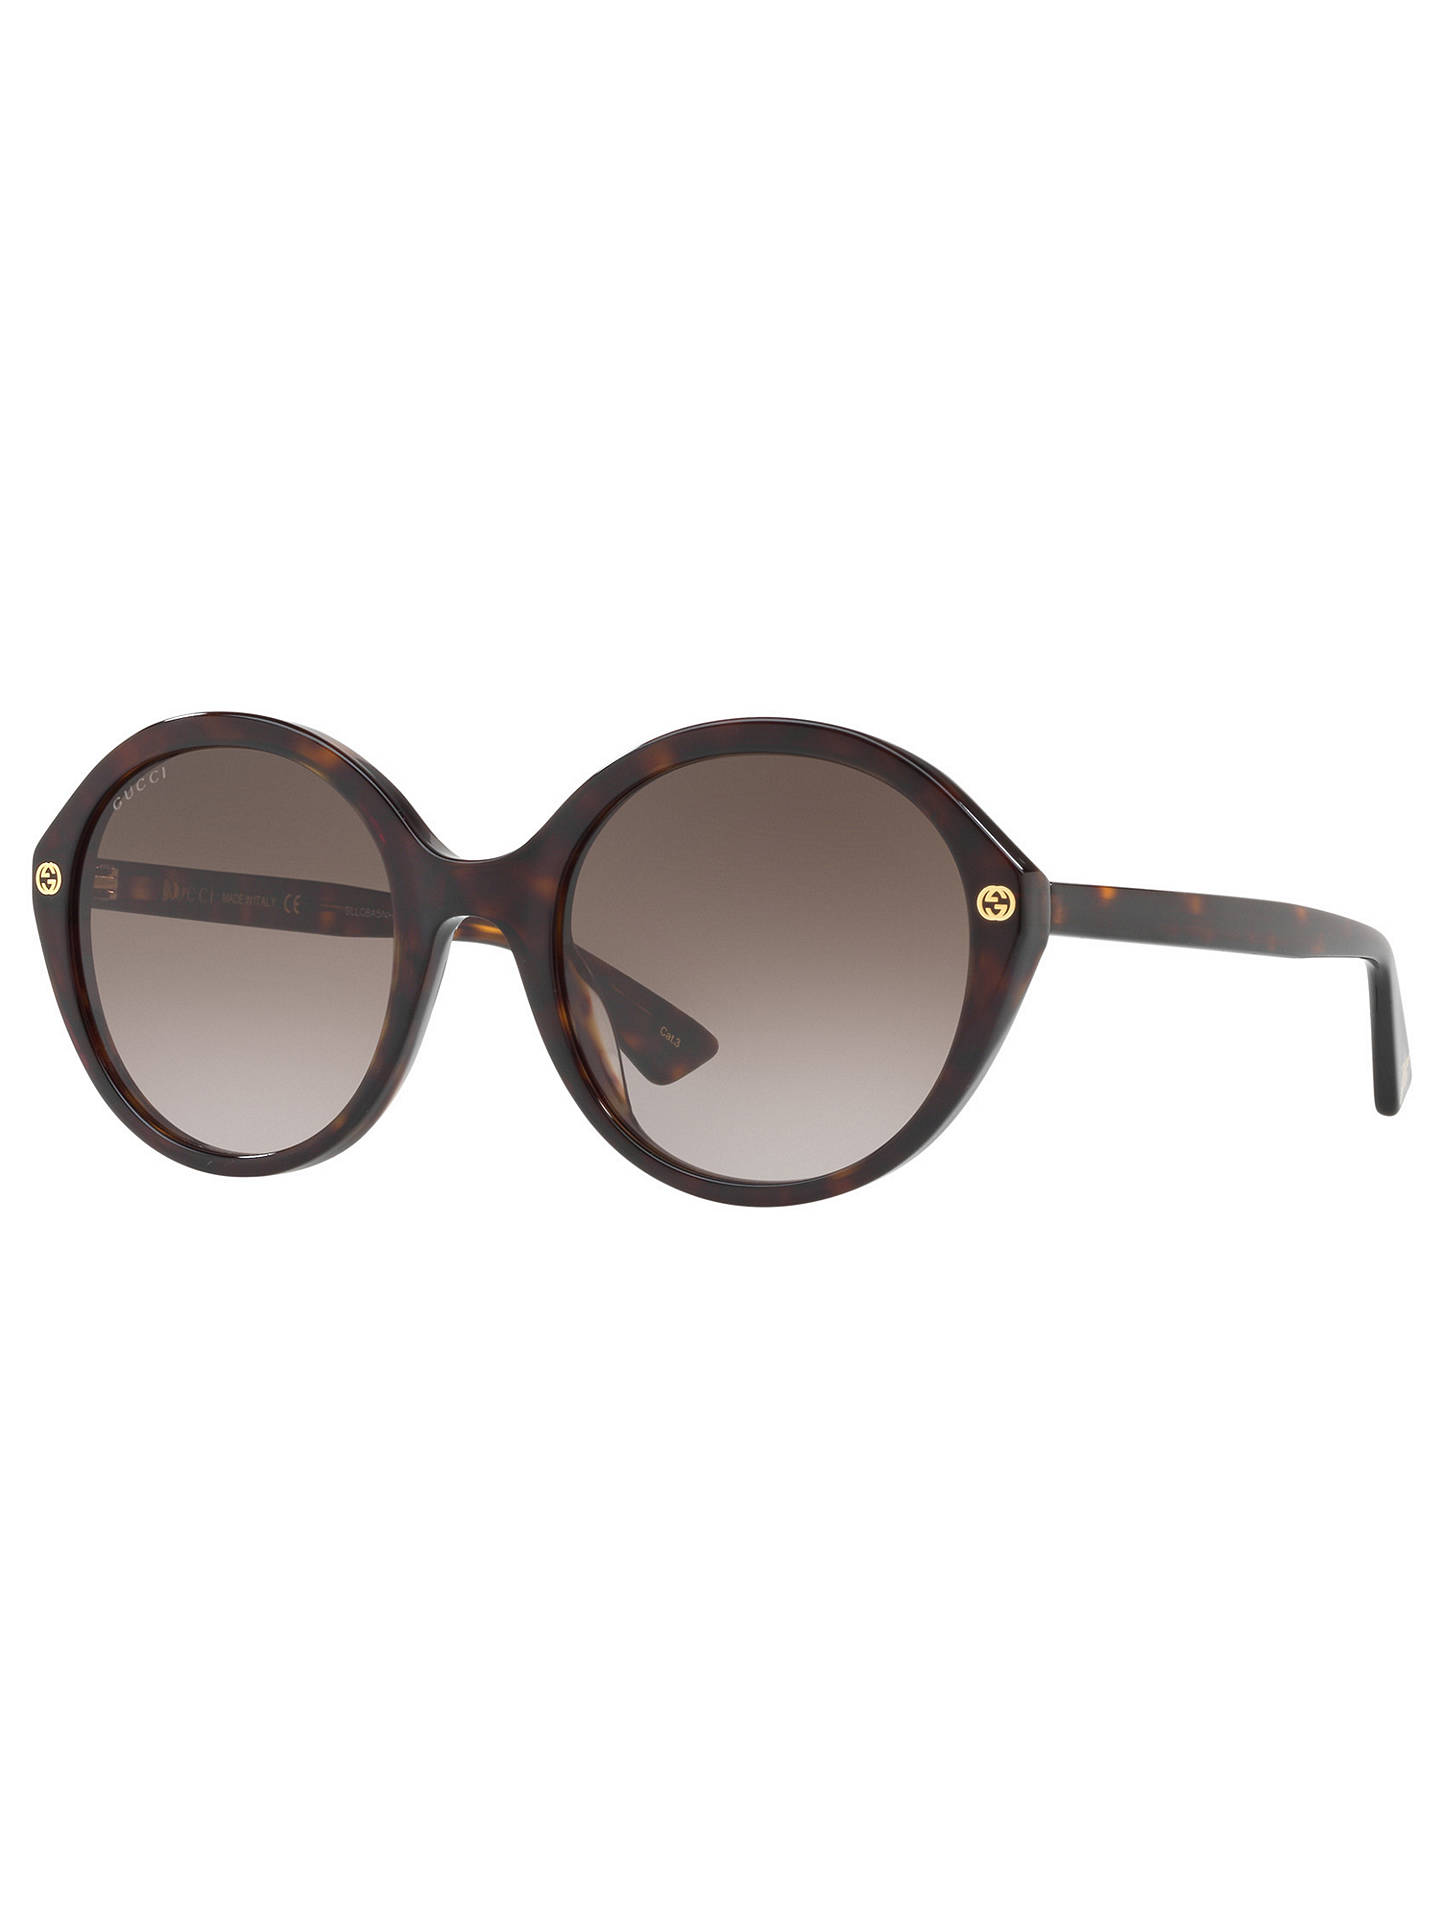 e2100350939d0 Gucci GG0023S Round Sunglasses at John Lewis   Partners